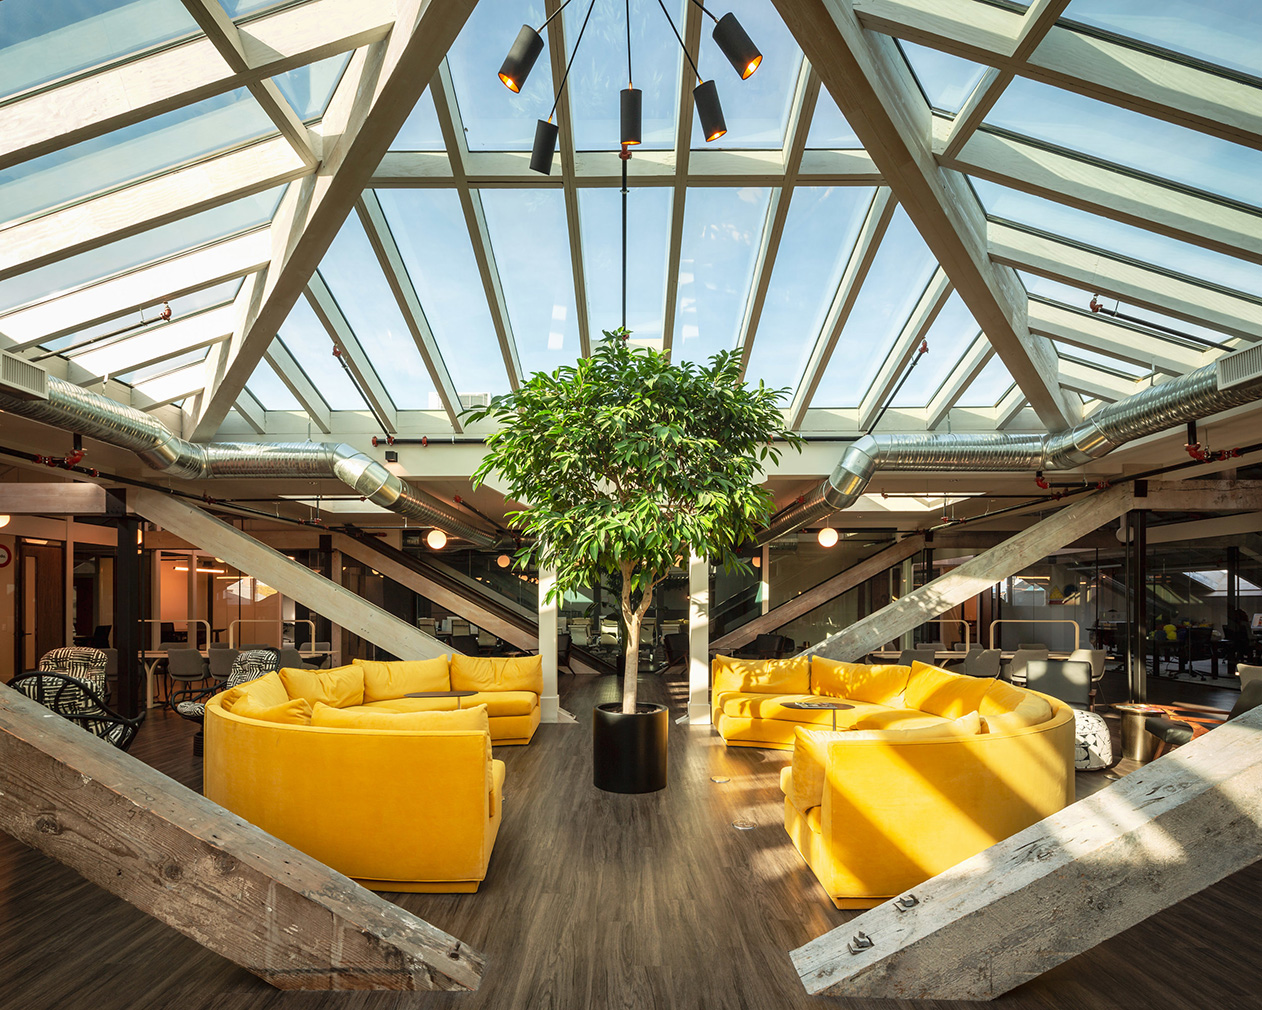 Victoria's newest coworking space Kwench sits under a vast glass roof